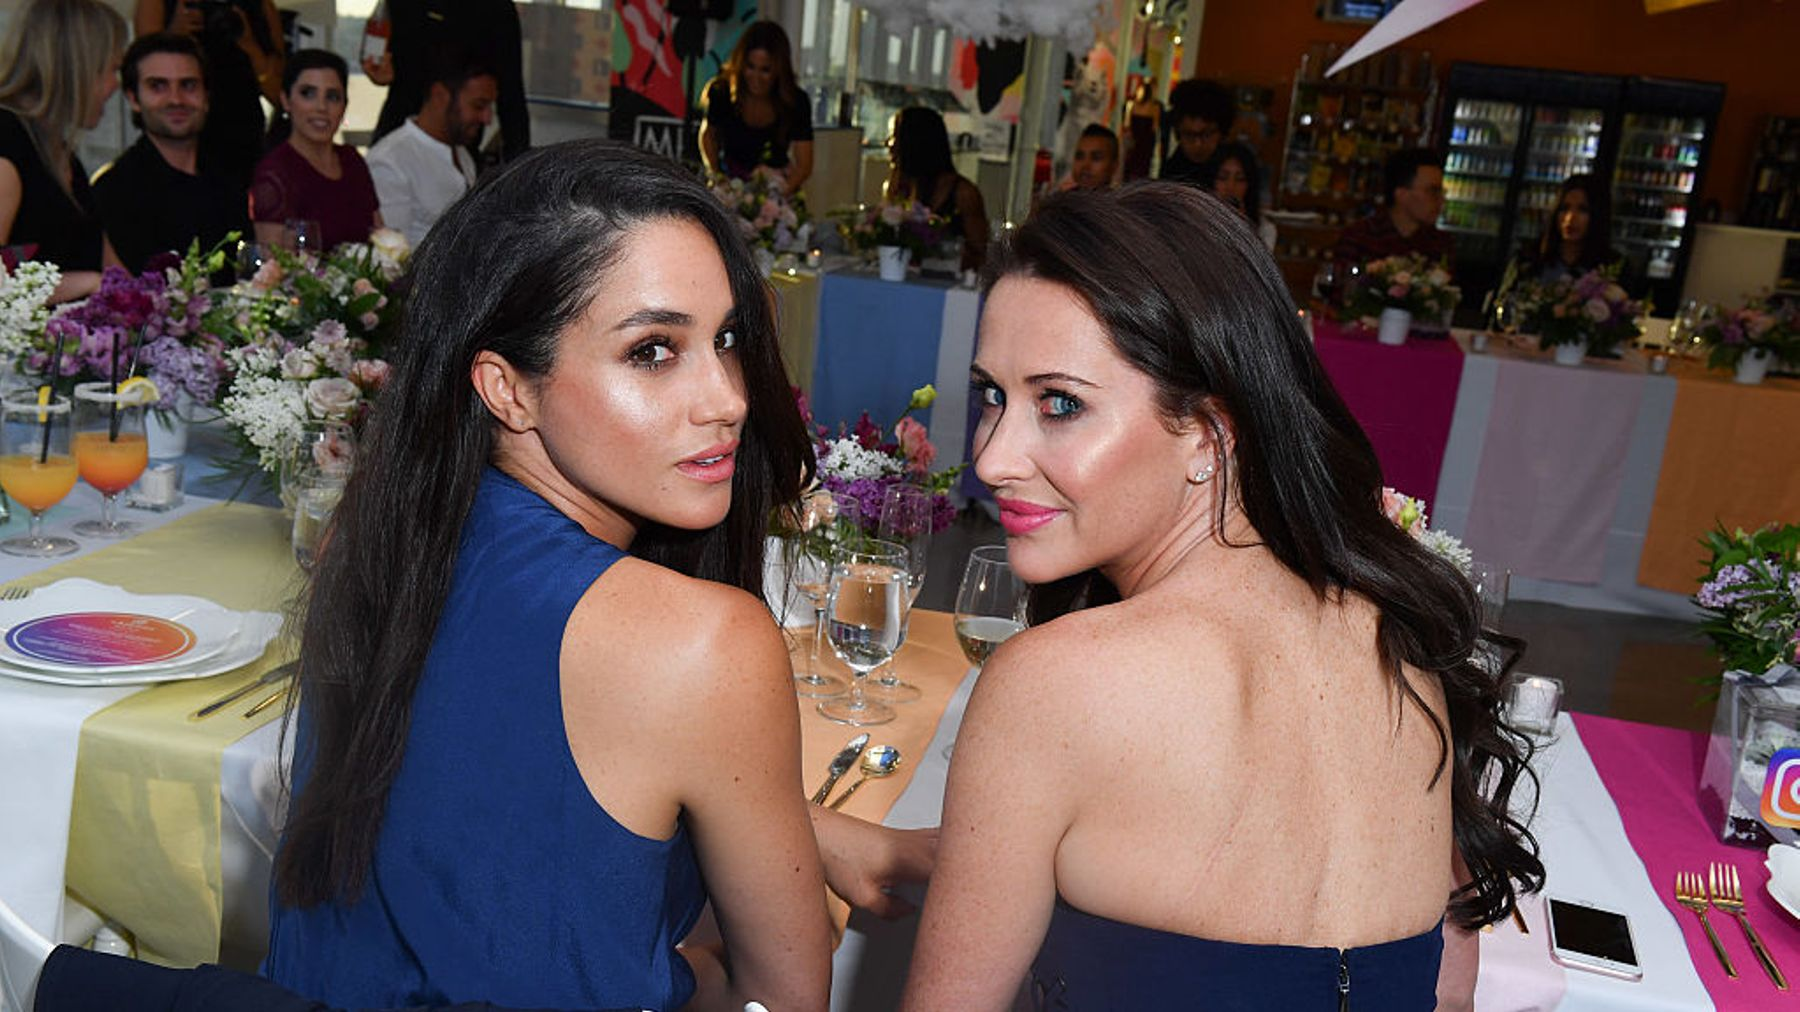 9 Things To Know About Jessica Mulroney, Meghan Markle's BFF